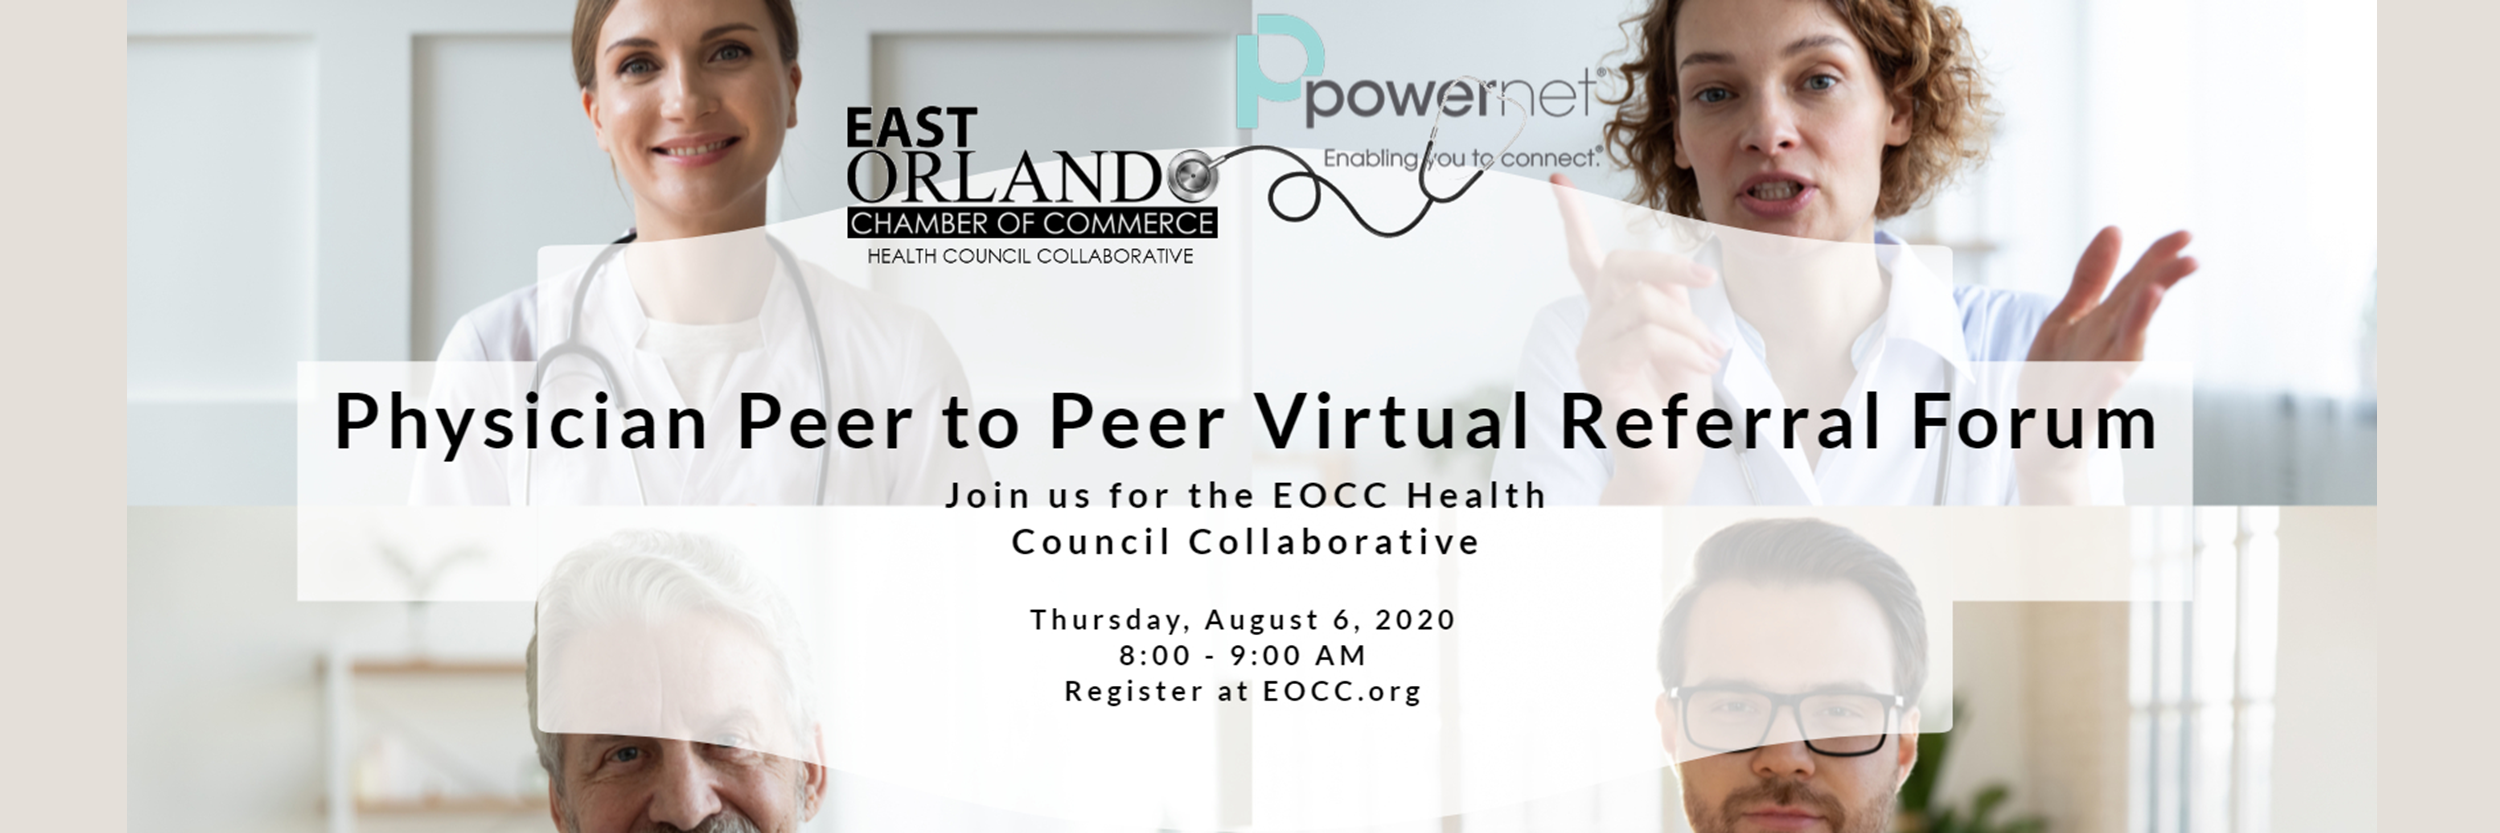 Physician Peer to Peer Virtual Referral Forum